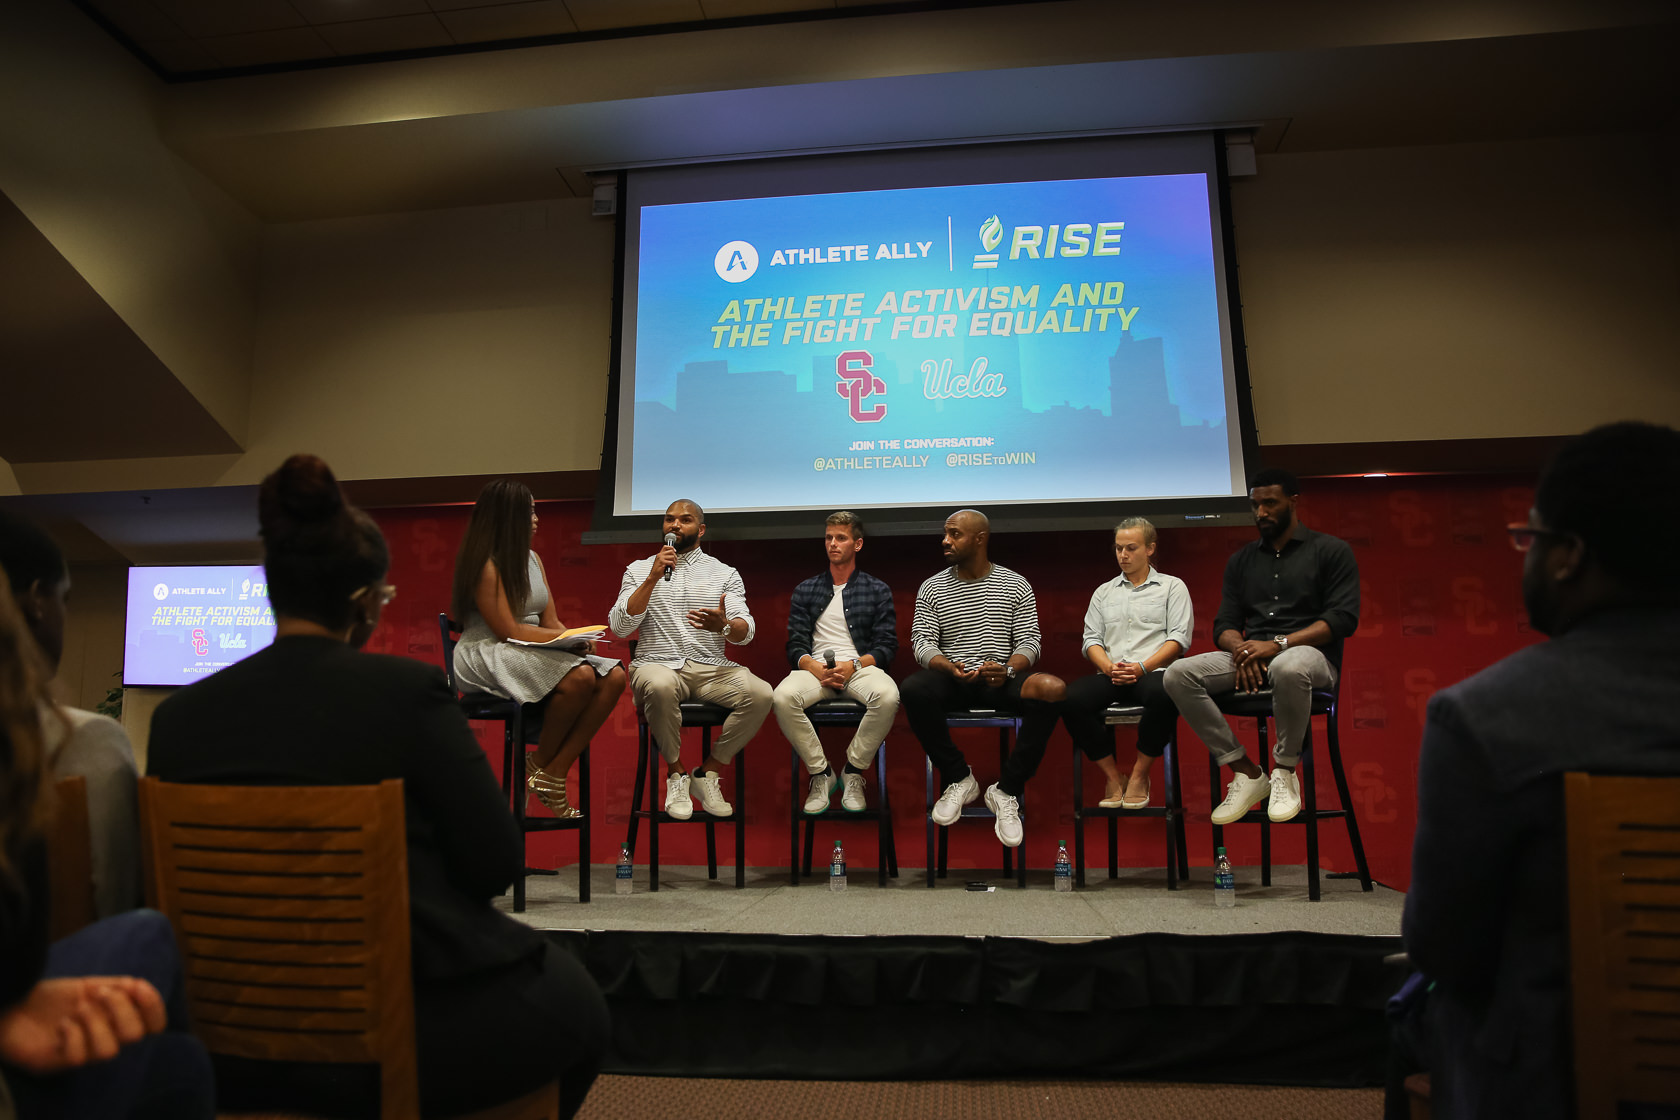 180716-kirby-gladstein-photograpy-RISE-Panel-USC-3044.jpg